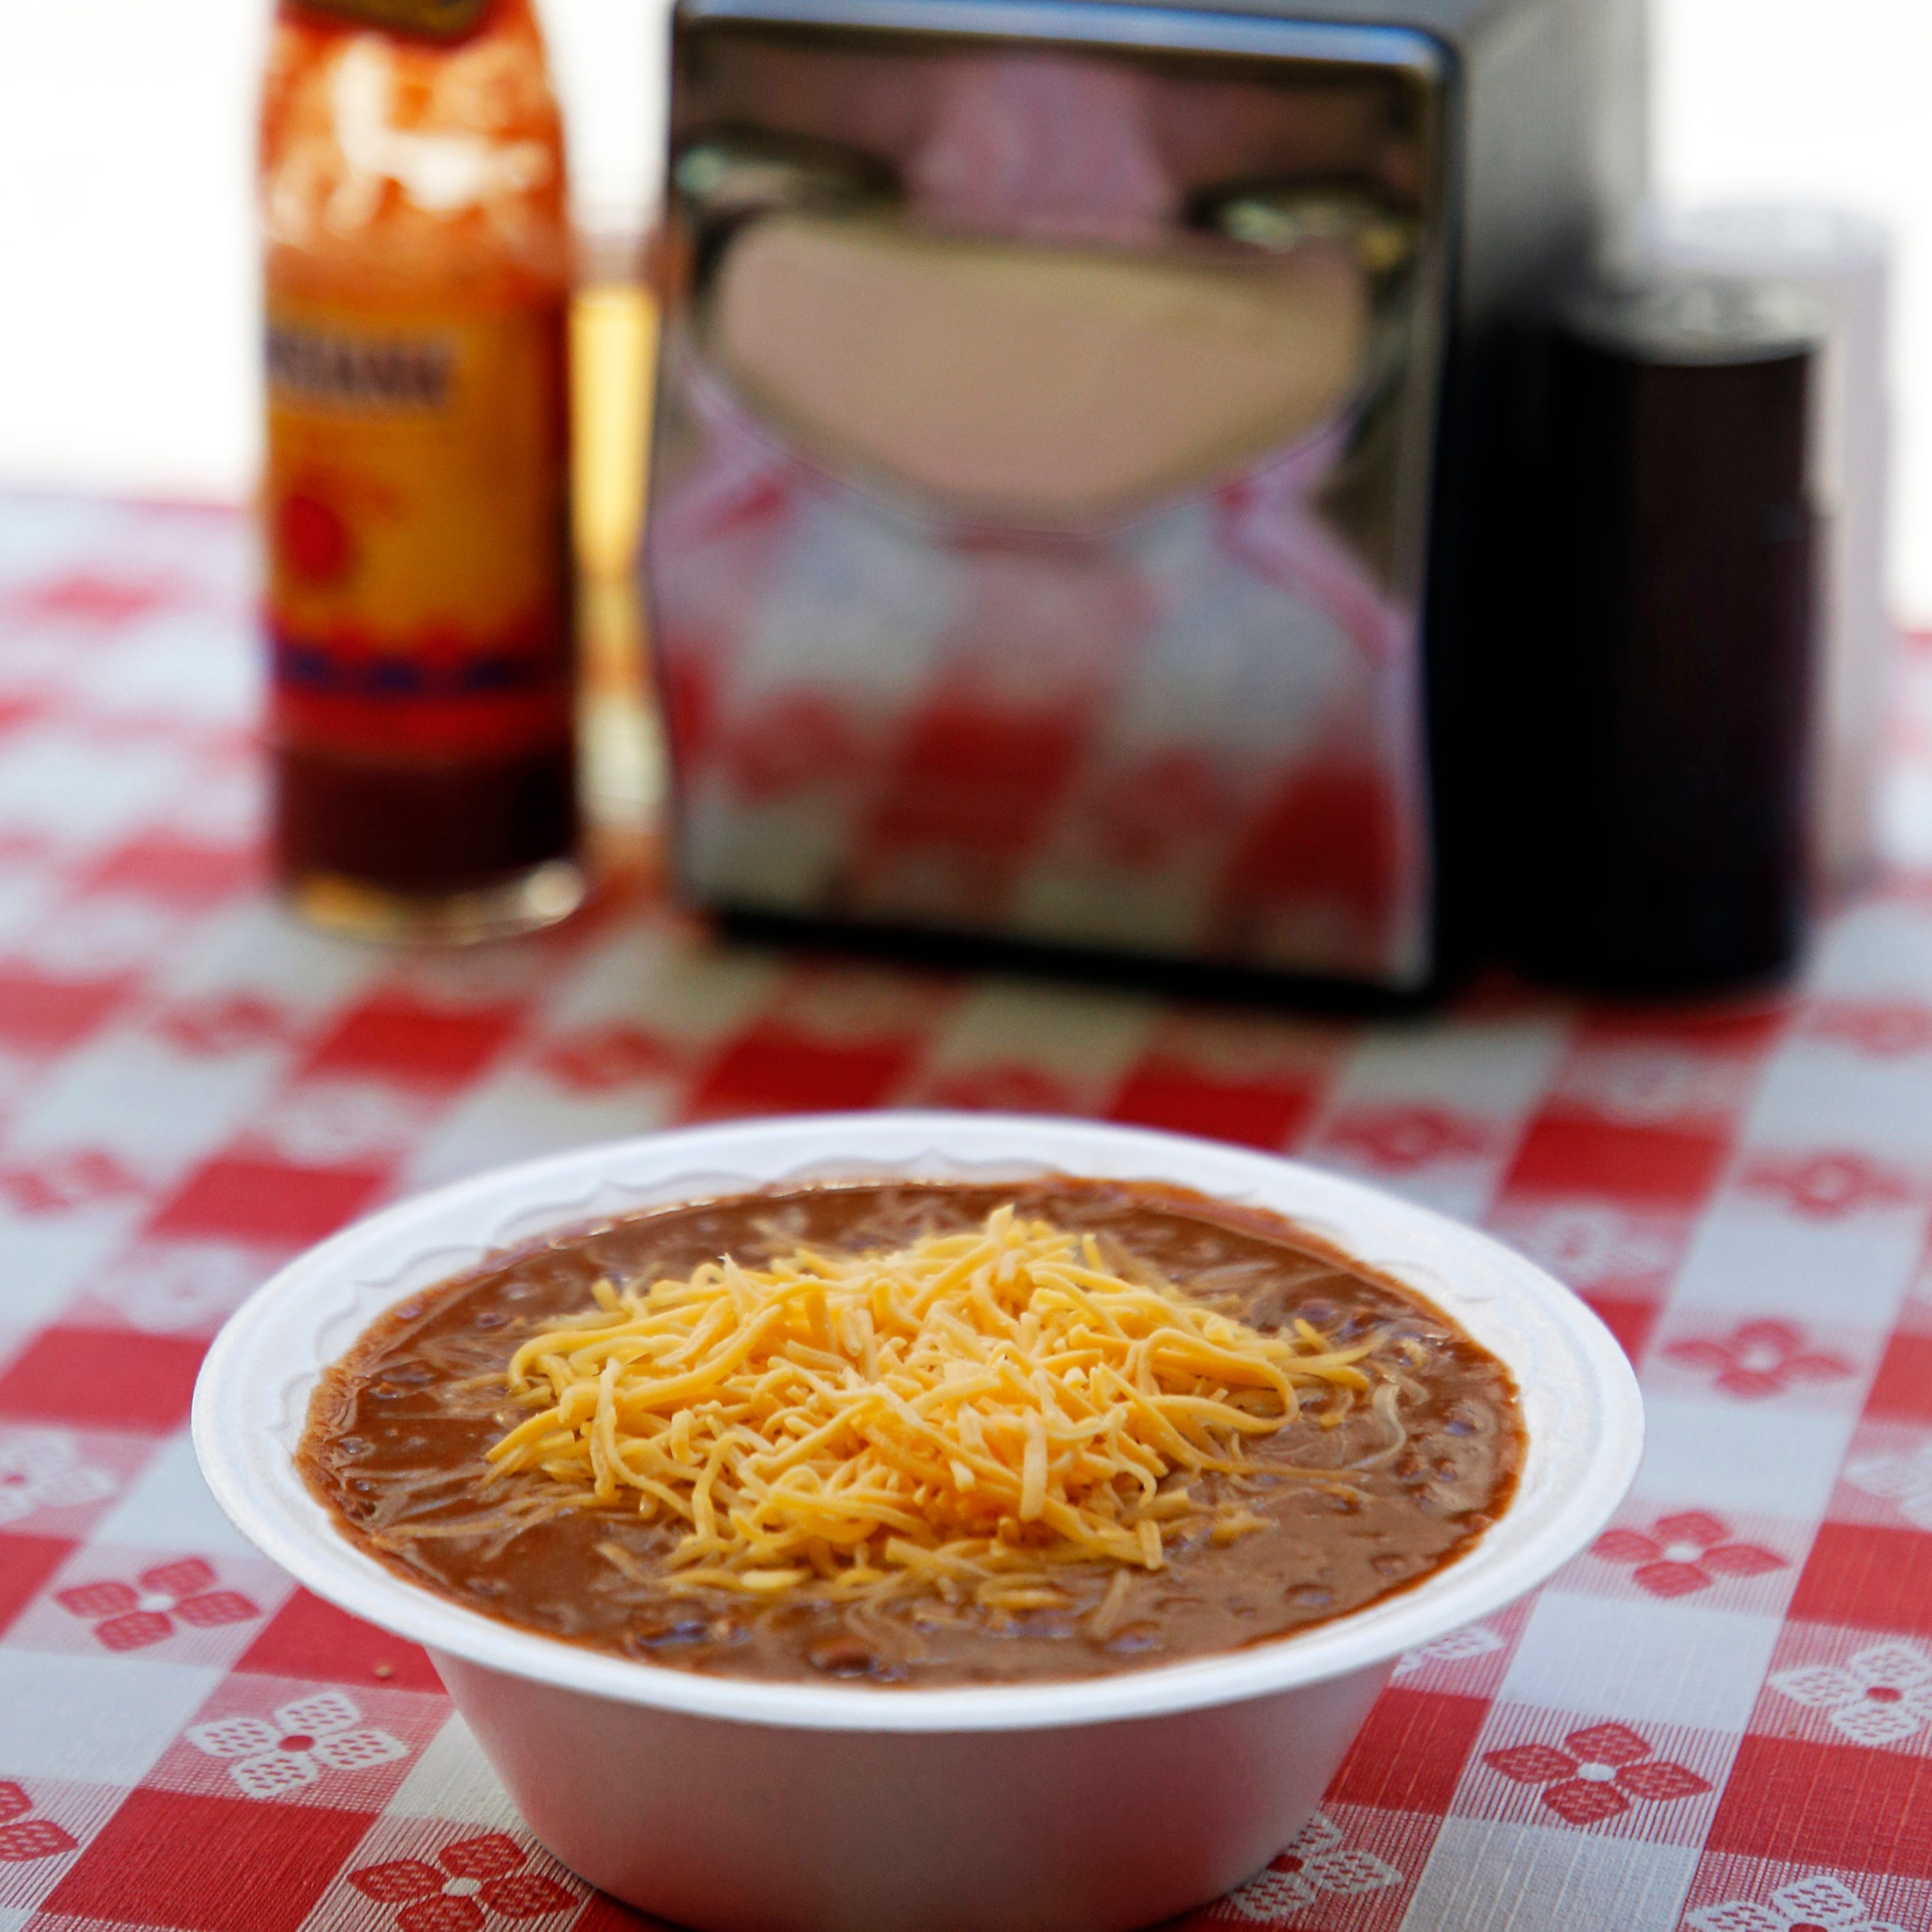 Historic Varallo's satisfies chili cravings with lunch options well under $10